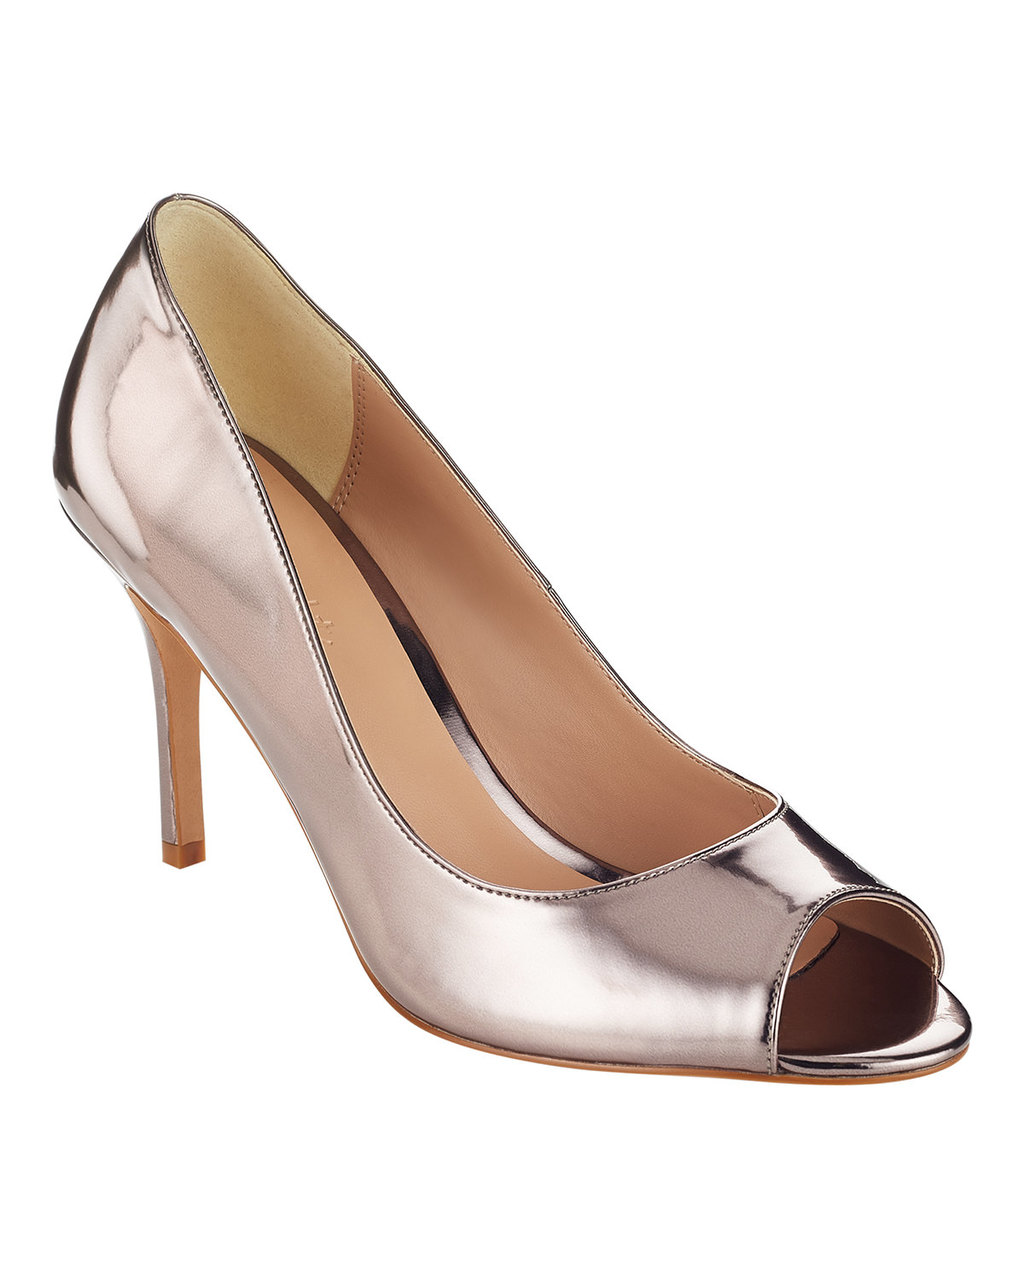 Georgia Peep Toe Court - predominant colour: silver; occasions: evening, occasion; material: leather; heel height: high; heel: stiletto; toe: open toe/peeptoe; style: courts; finish: metallic; pattern: plain; season: a/w 2015